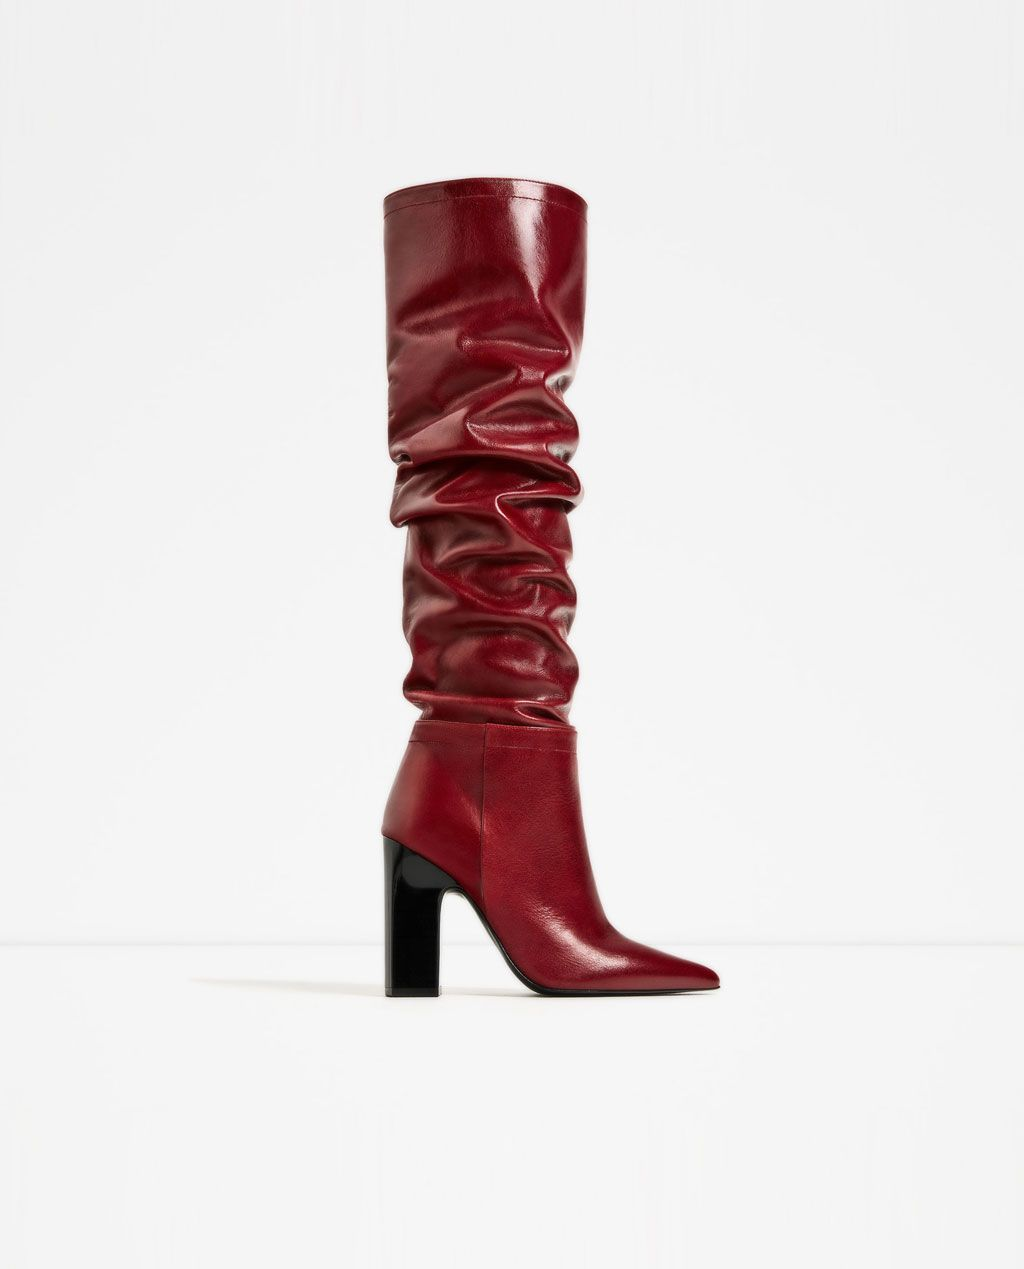 987fd4dddcf LEATHER HIGH HEEL BOOTS WITH WIDE LEG